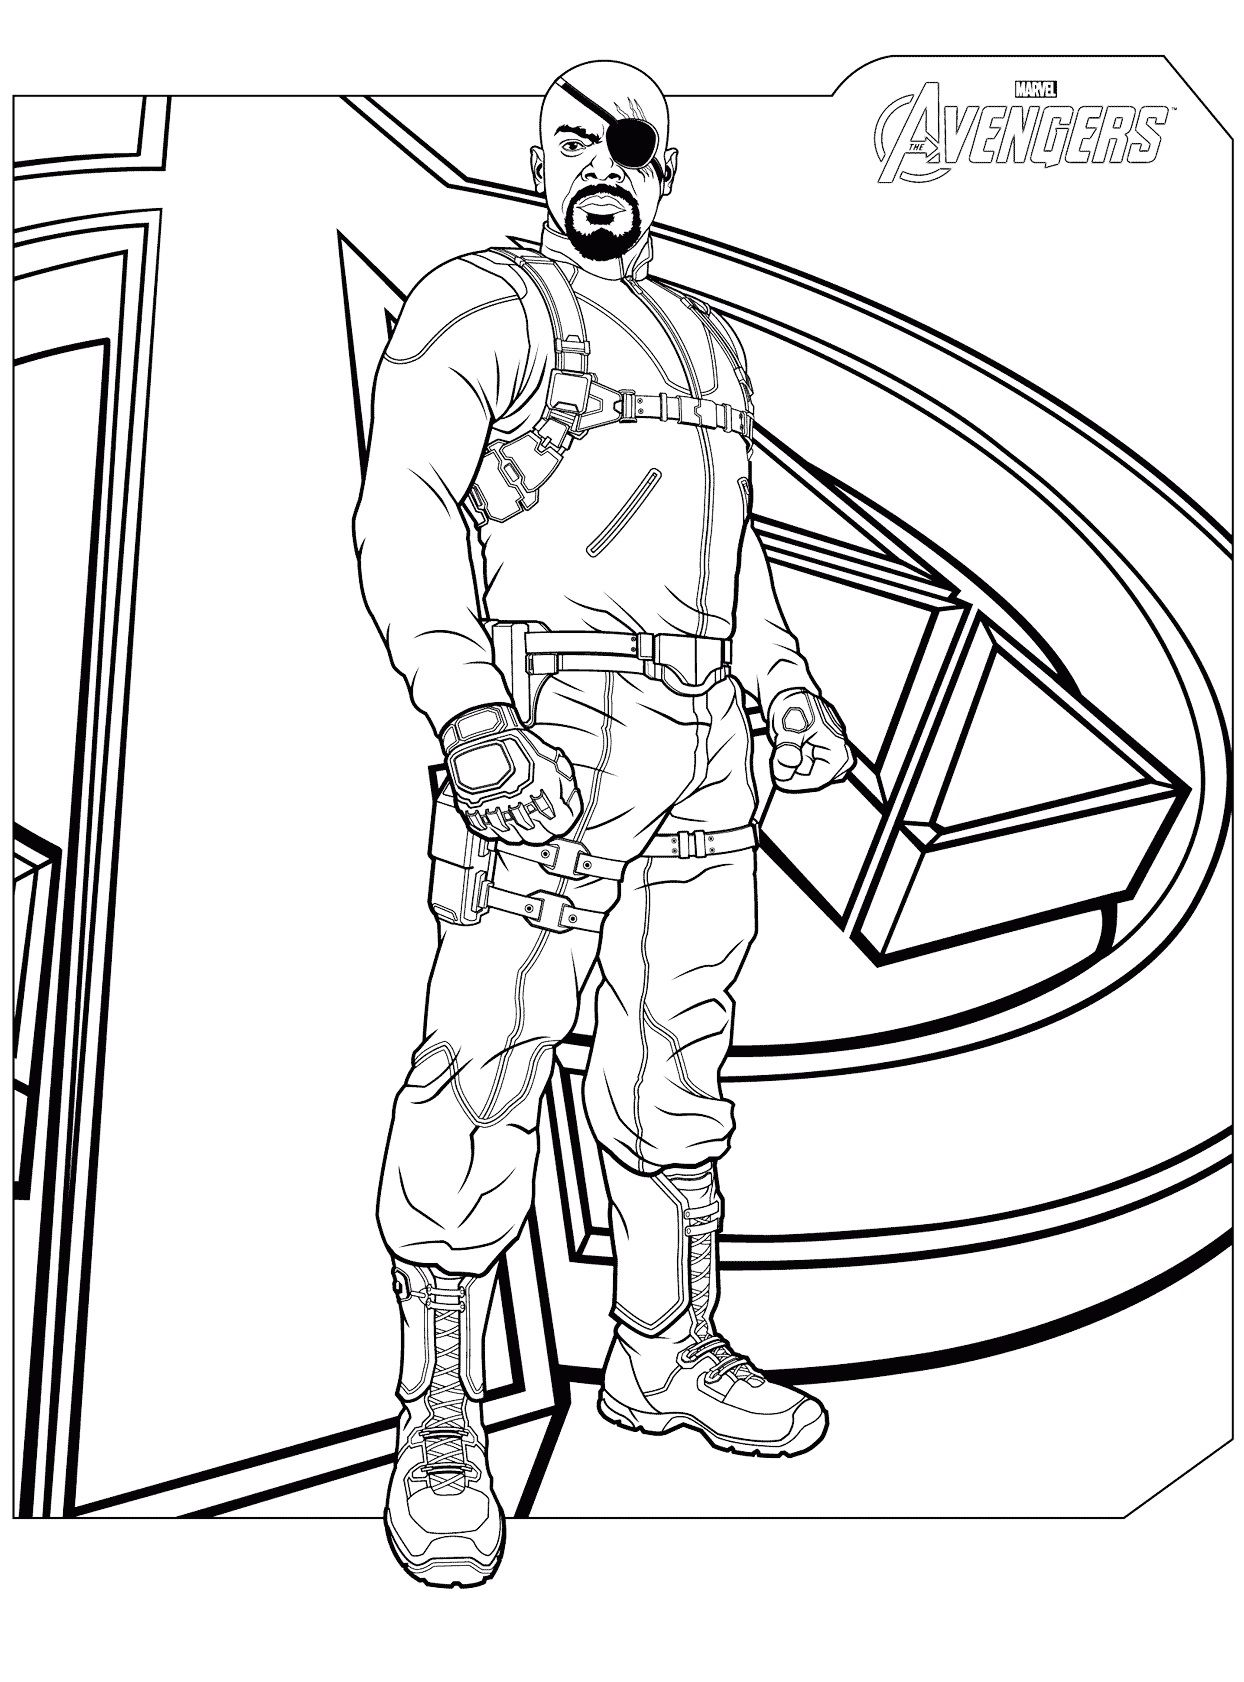 Avengers Coloring Pages Marvel Coloring Avengers Coloring